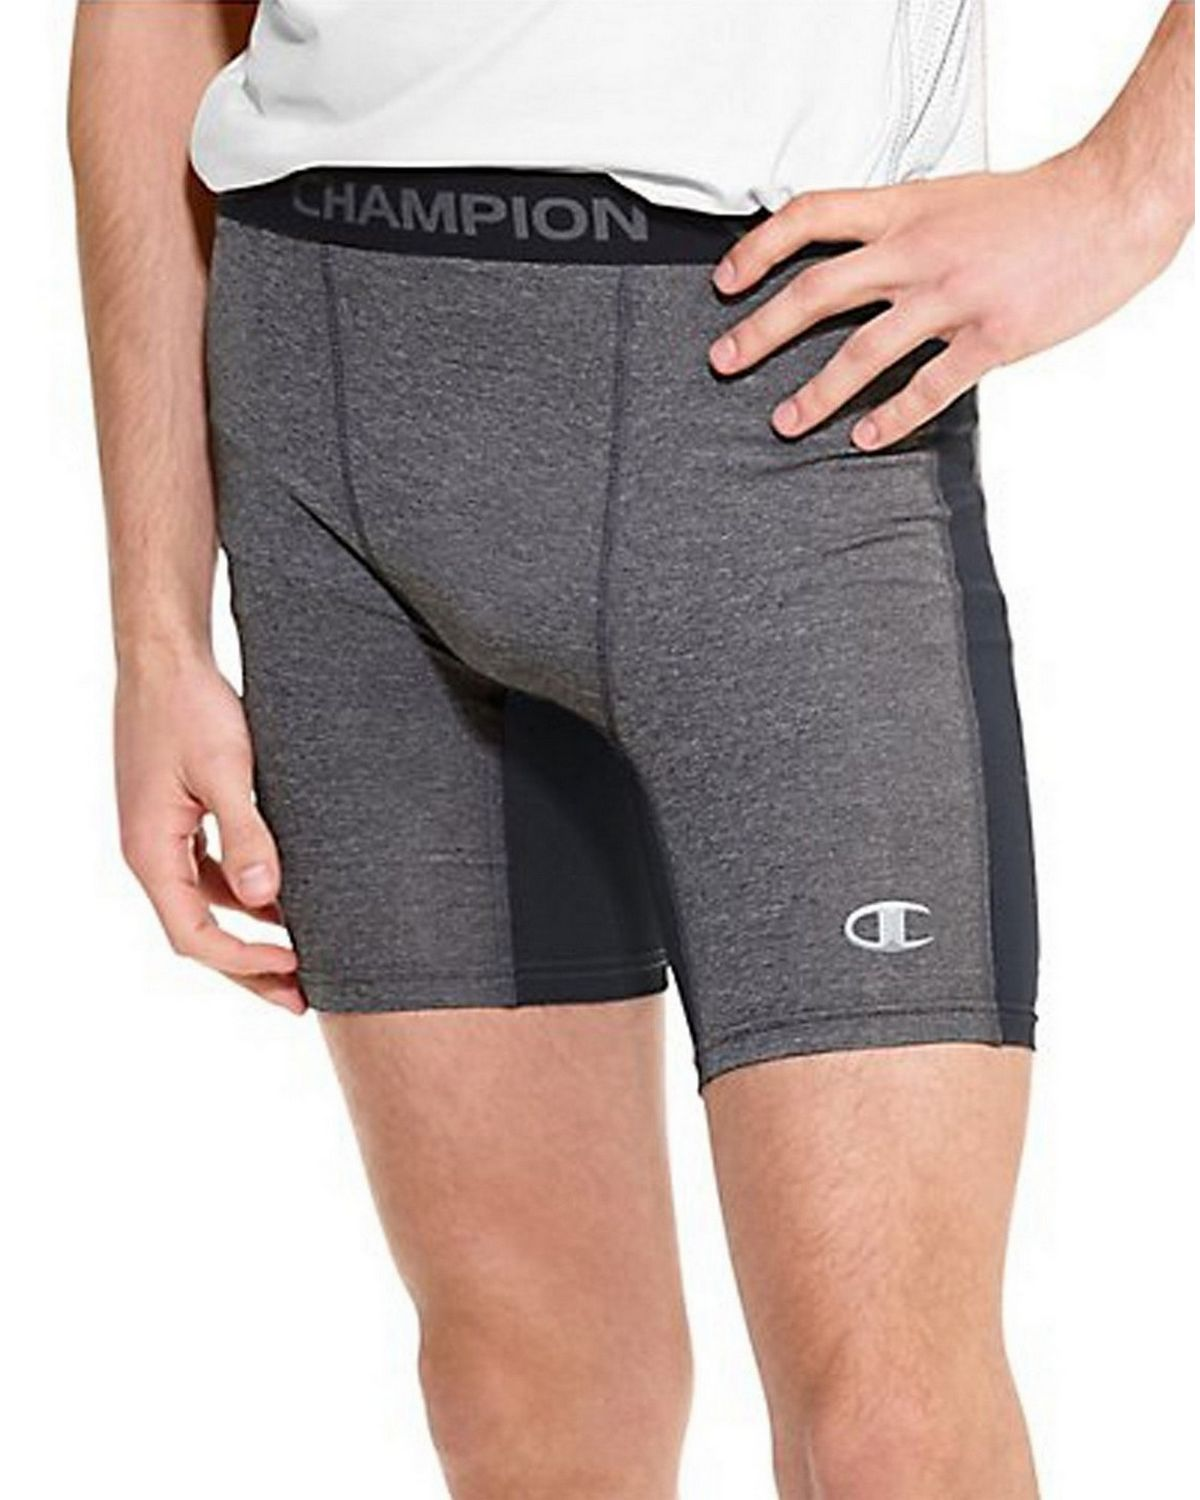 Champion 87294 PowerTrain PowerFlex Solid Compression Shorts - Slate Grey Heather/Black - S 87294